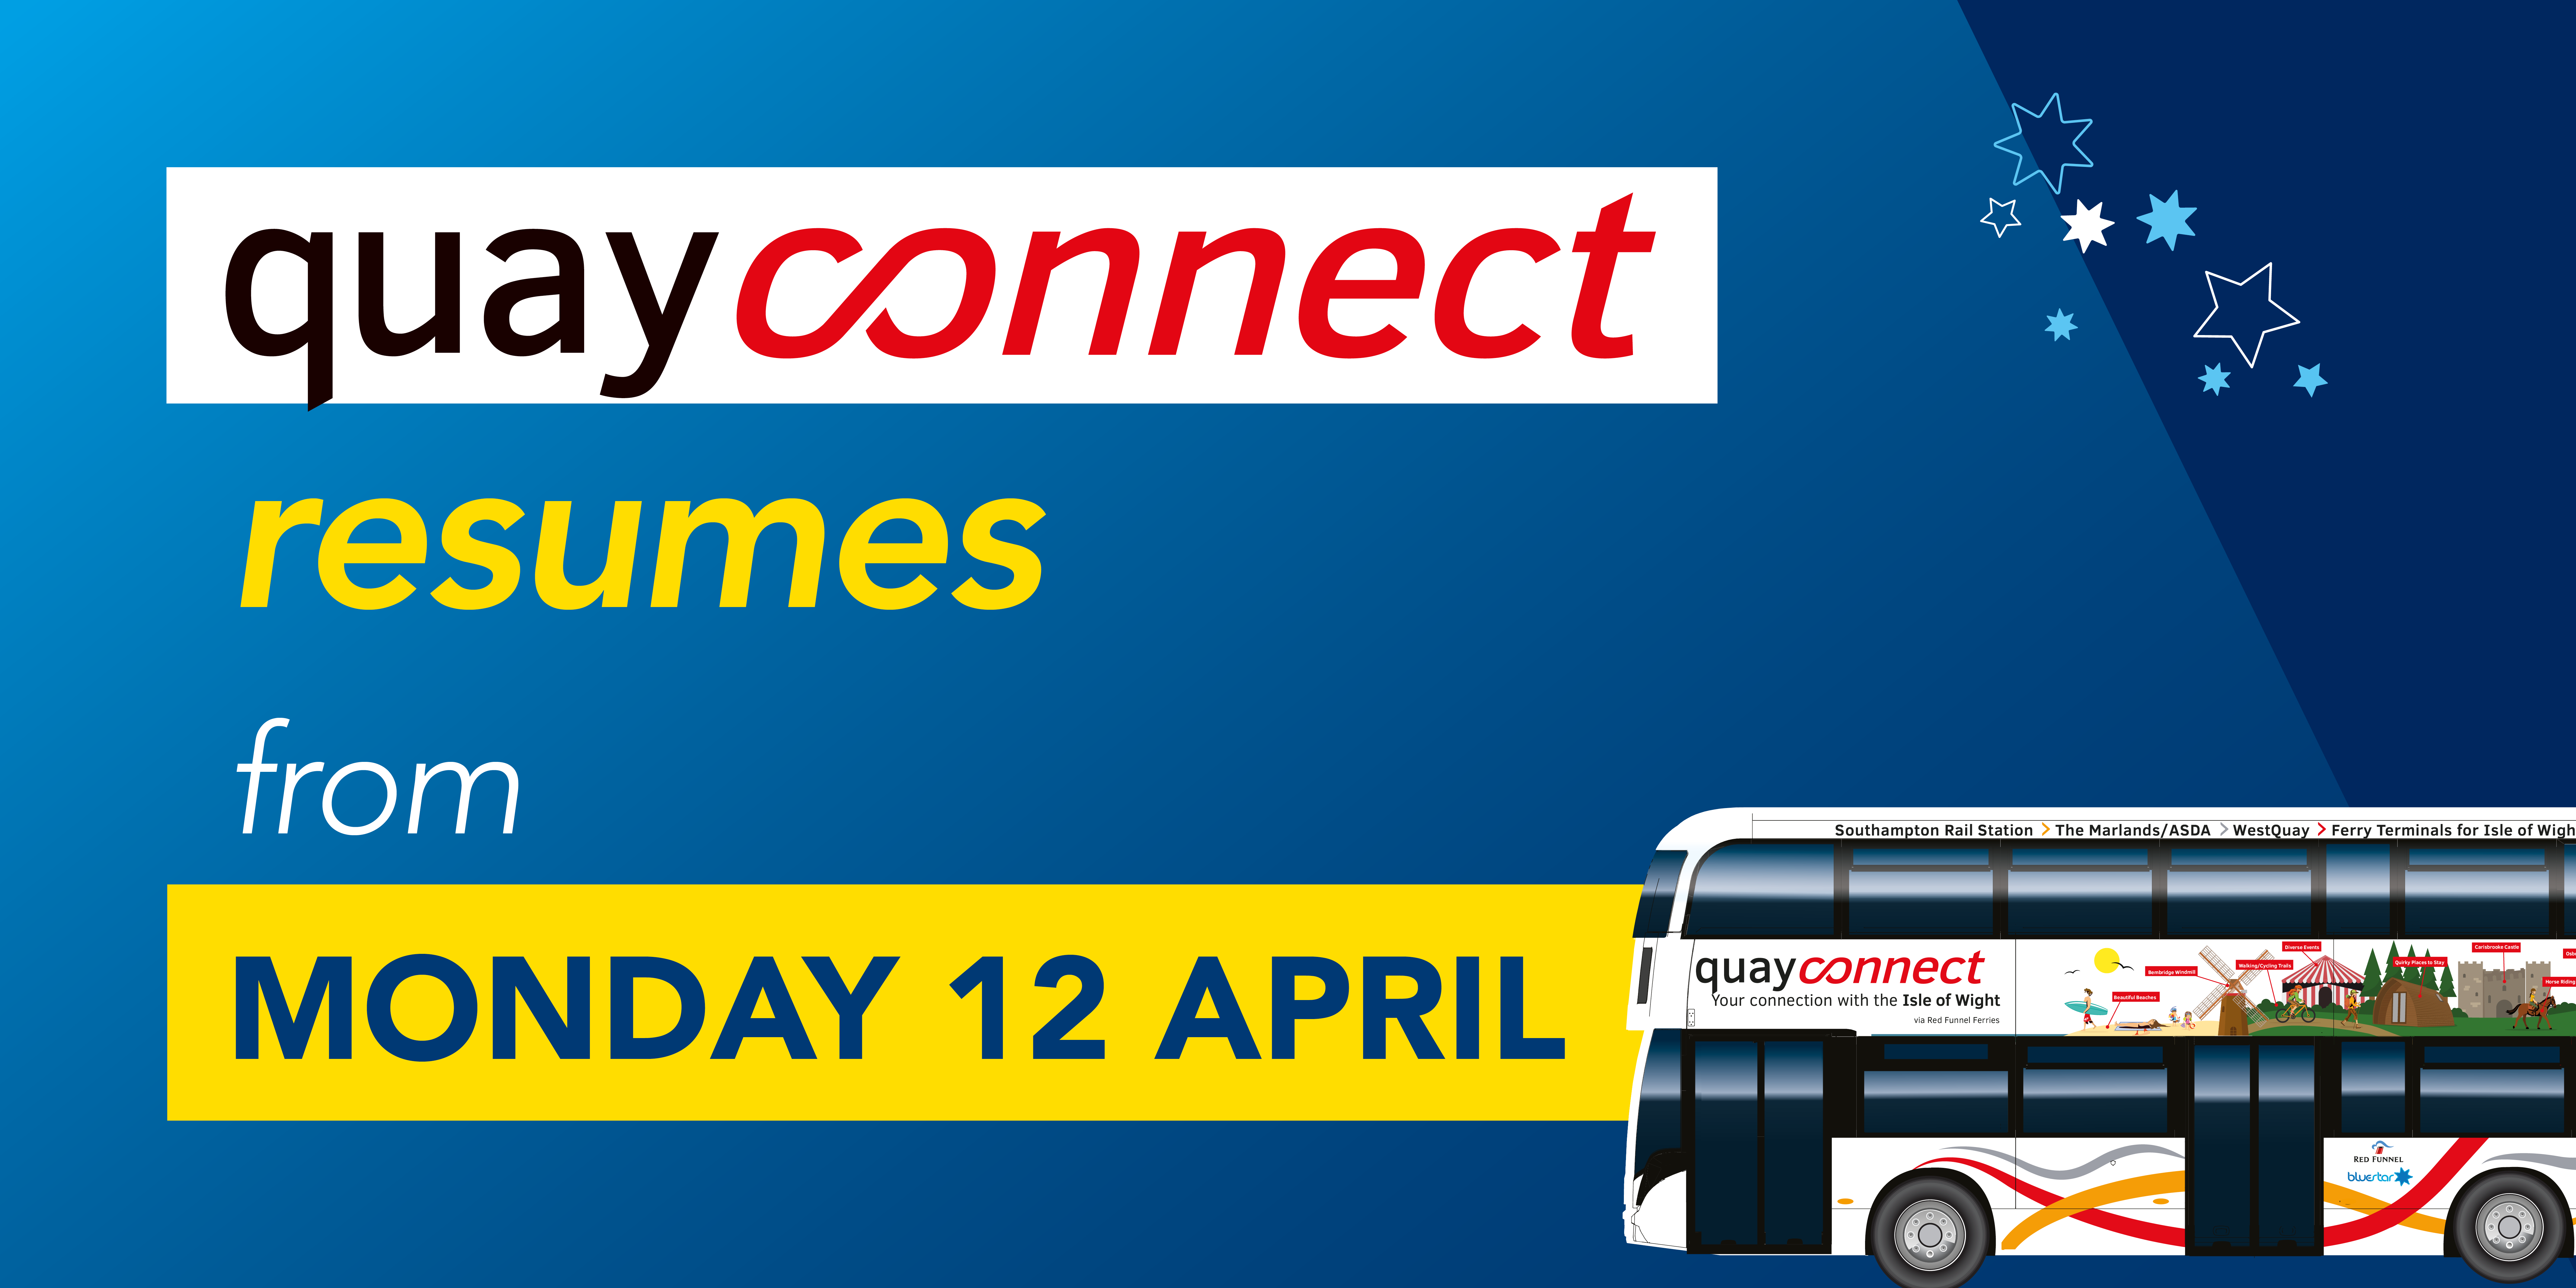 Image of a Quay Connect bus with text reading 'quayconnect resumes from Monday 12th April'